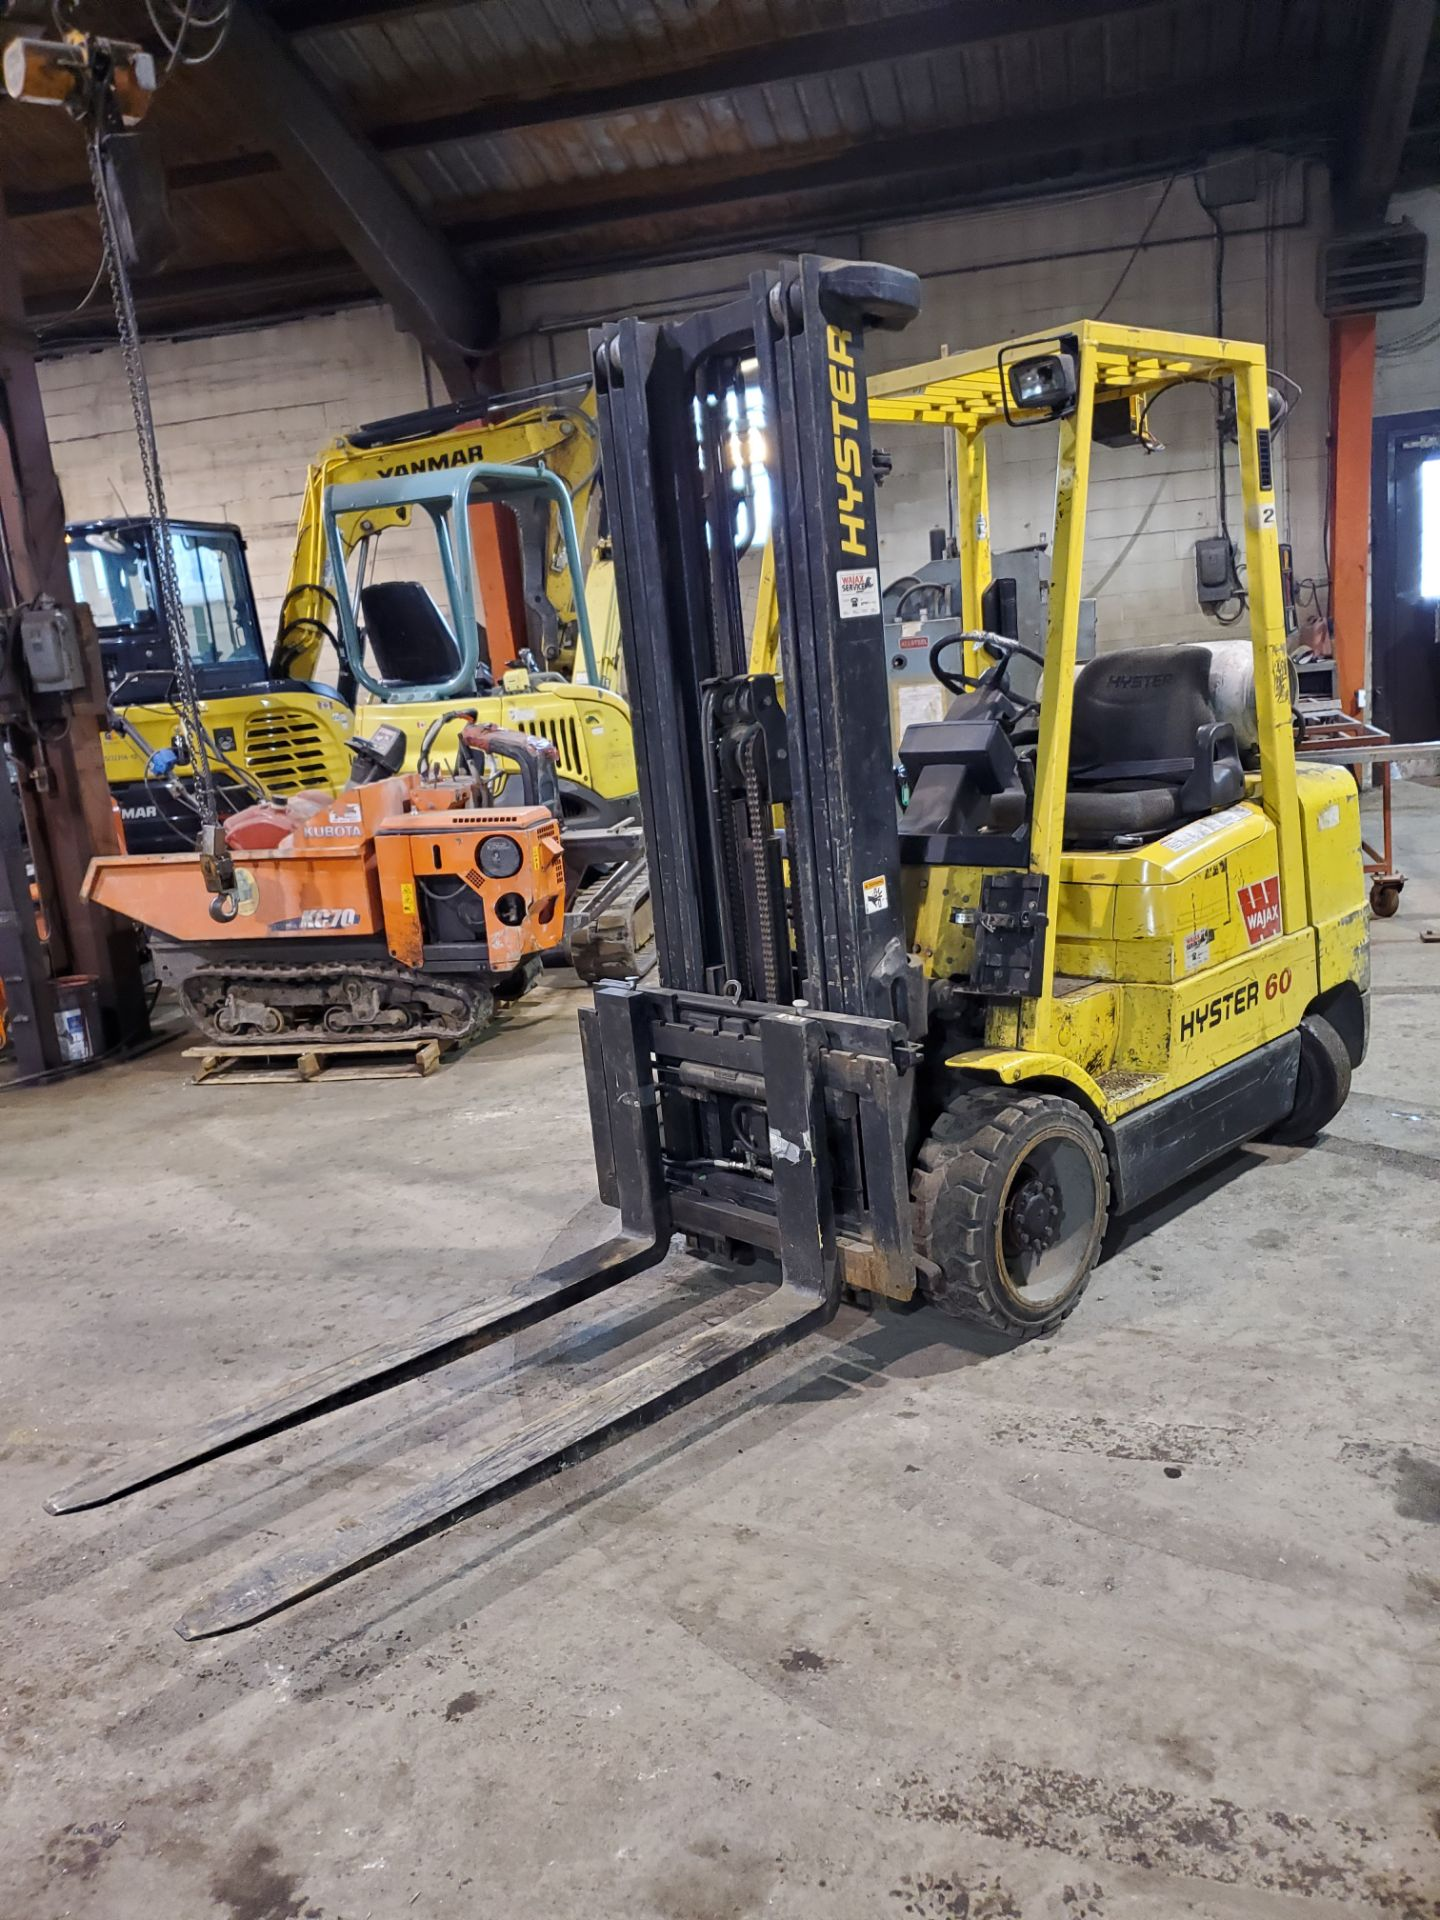 HYSTER PROPANE FORKLIFT, S60XM 6000LB CAPACITY, TRIPLE MAST, SIDE SHIFT- LOCATION - LACHINE, QUEBEC - Image 3 of 6